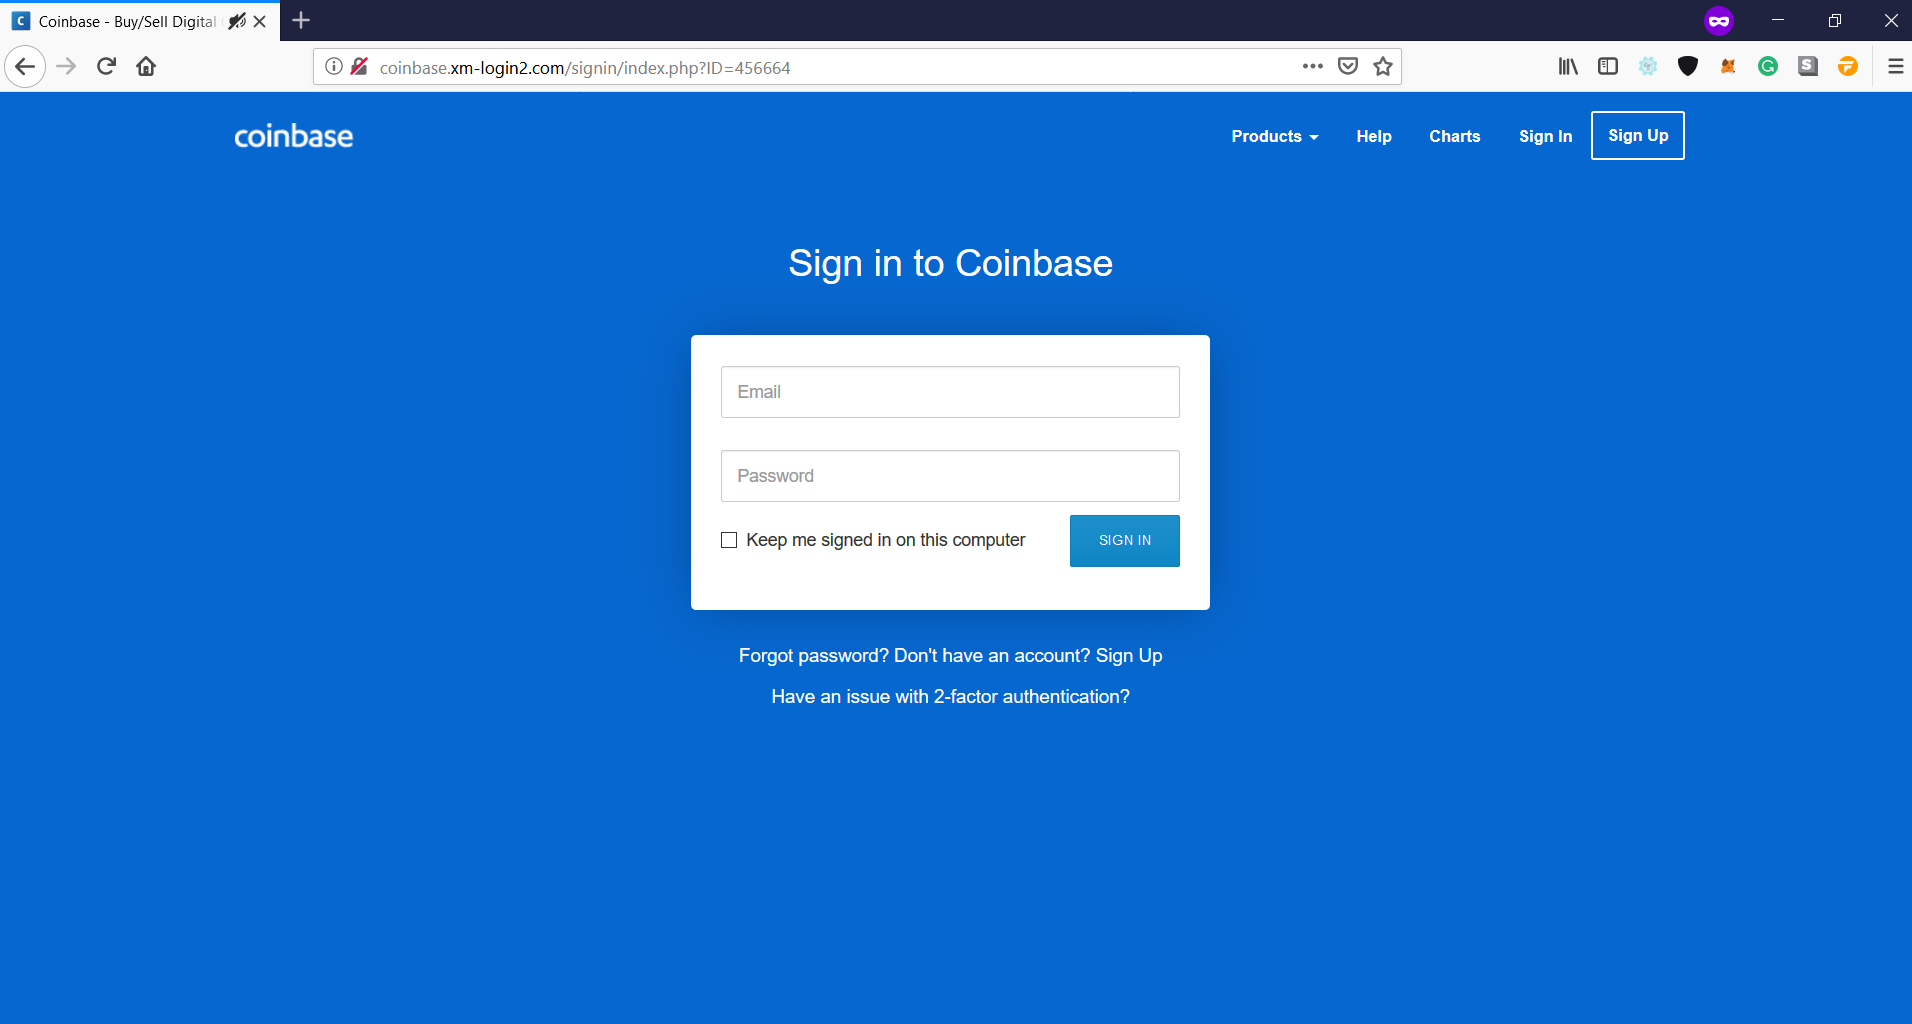 Fake Coinbase [Blacklist Request] · Issue #2642 · MetaMask